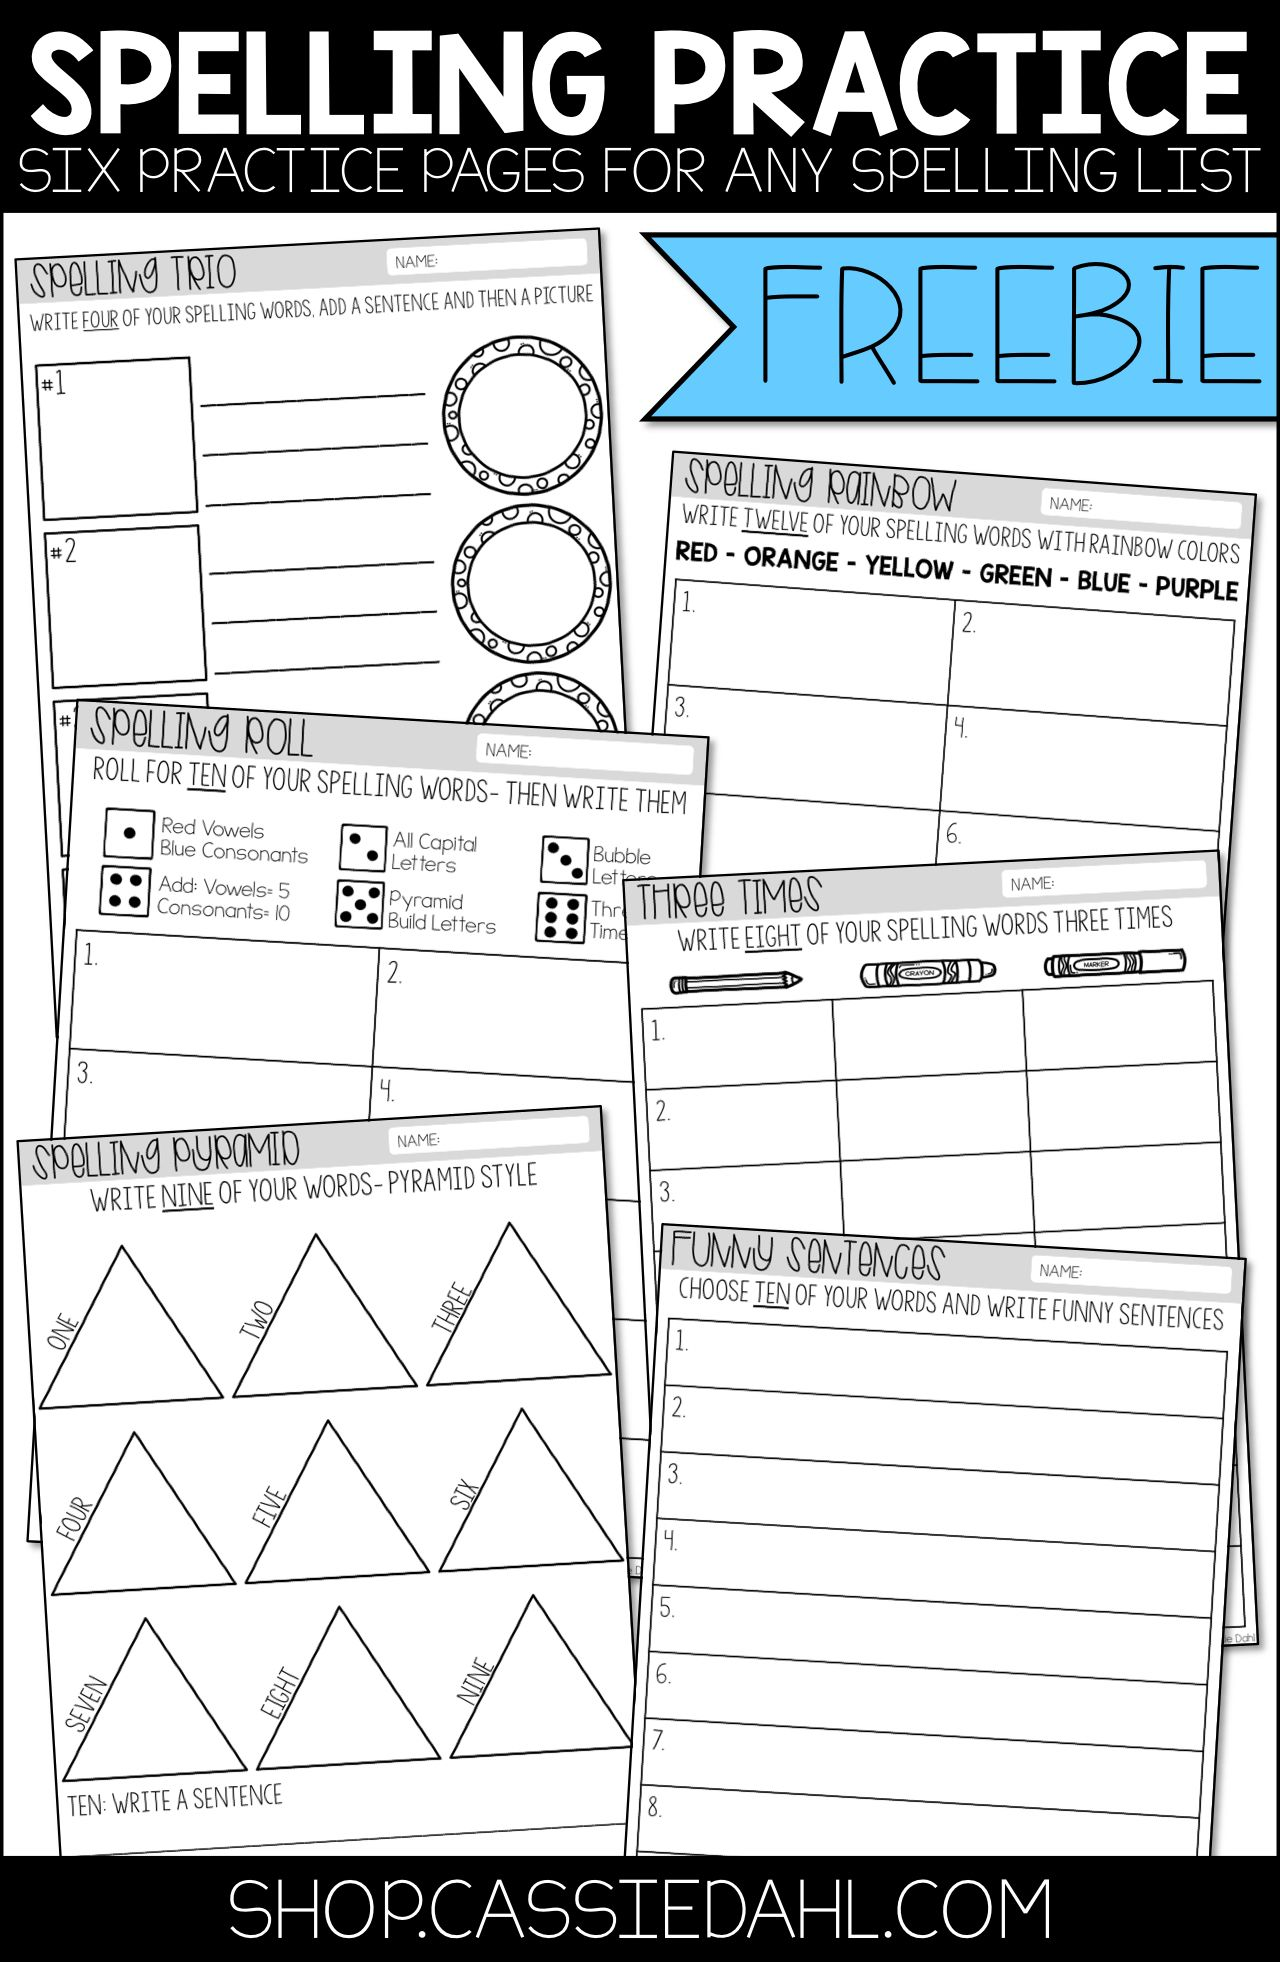 Worksheets Spelling Practice Worksheets spelling practice sheets free educational resources for teachers this freebie contains six pages that you can use with any list these be sent home as homework pla